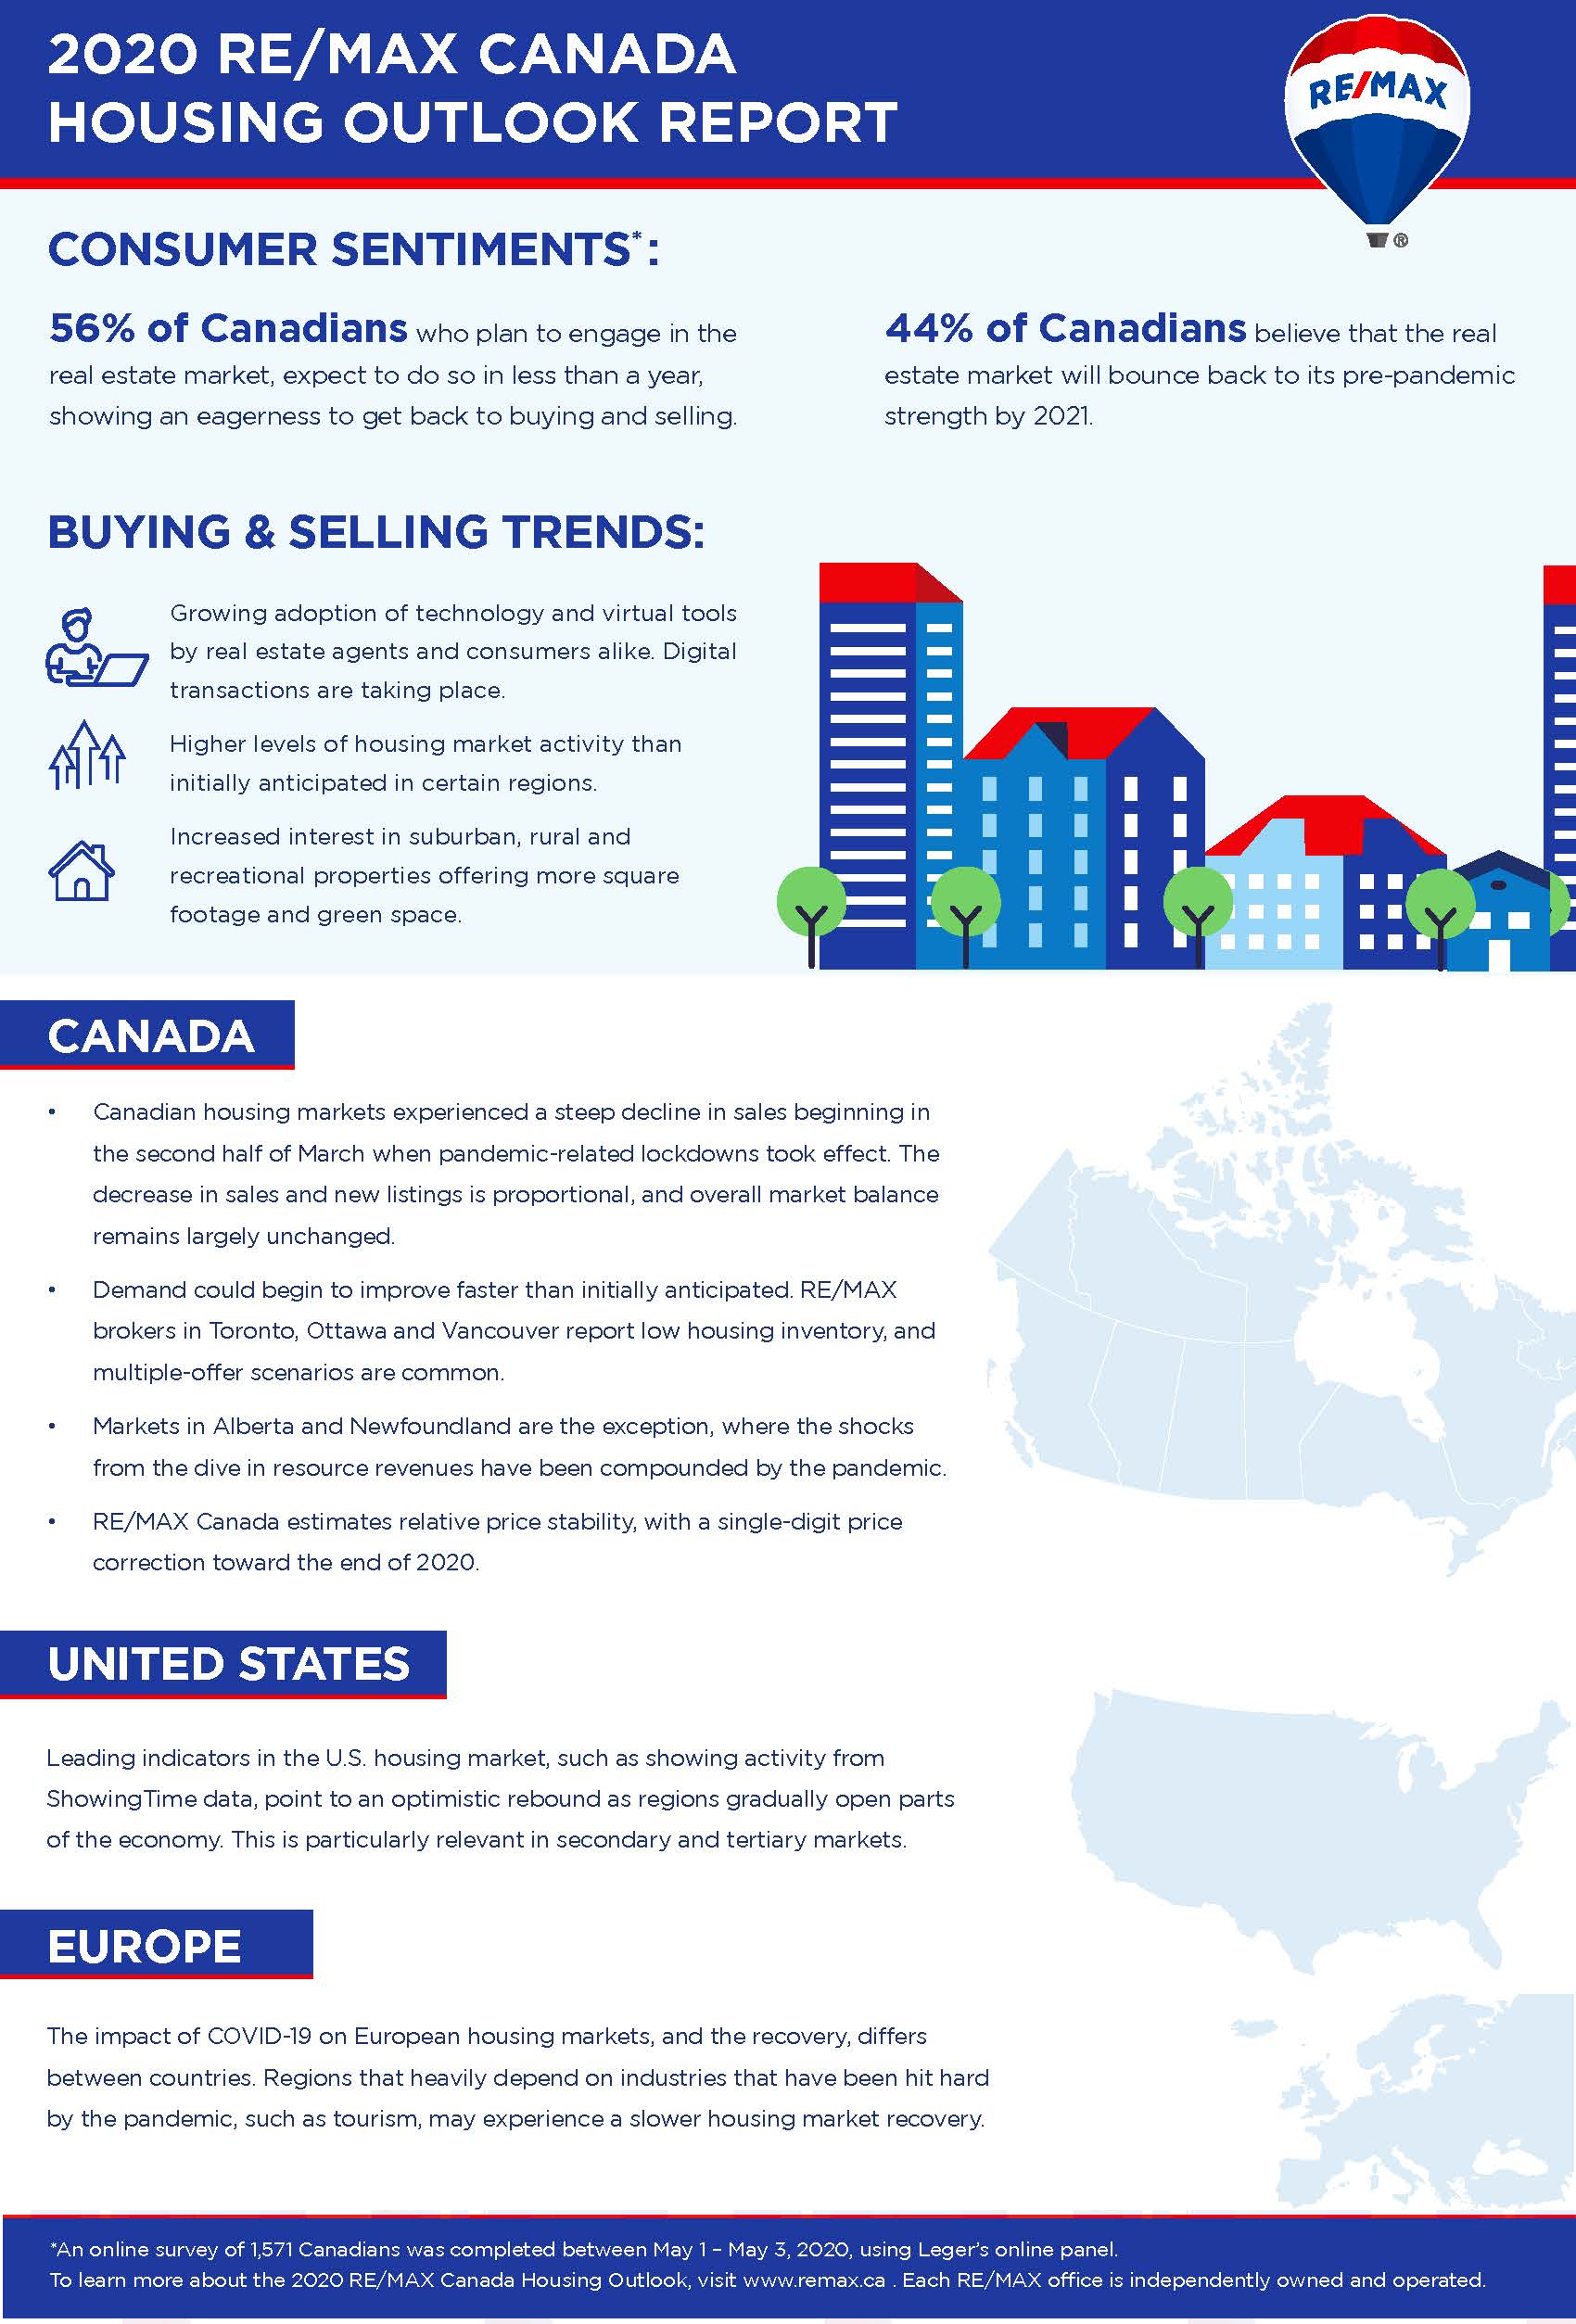 Promise in Areas of Europe, US Gives Canadian Housing Market Hope